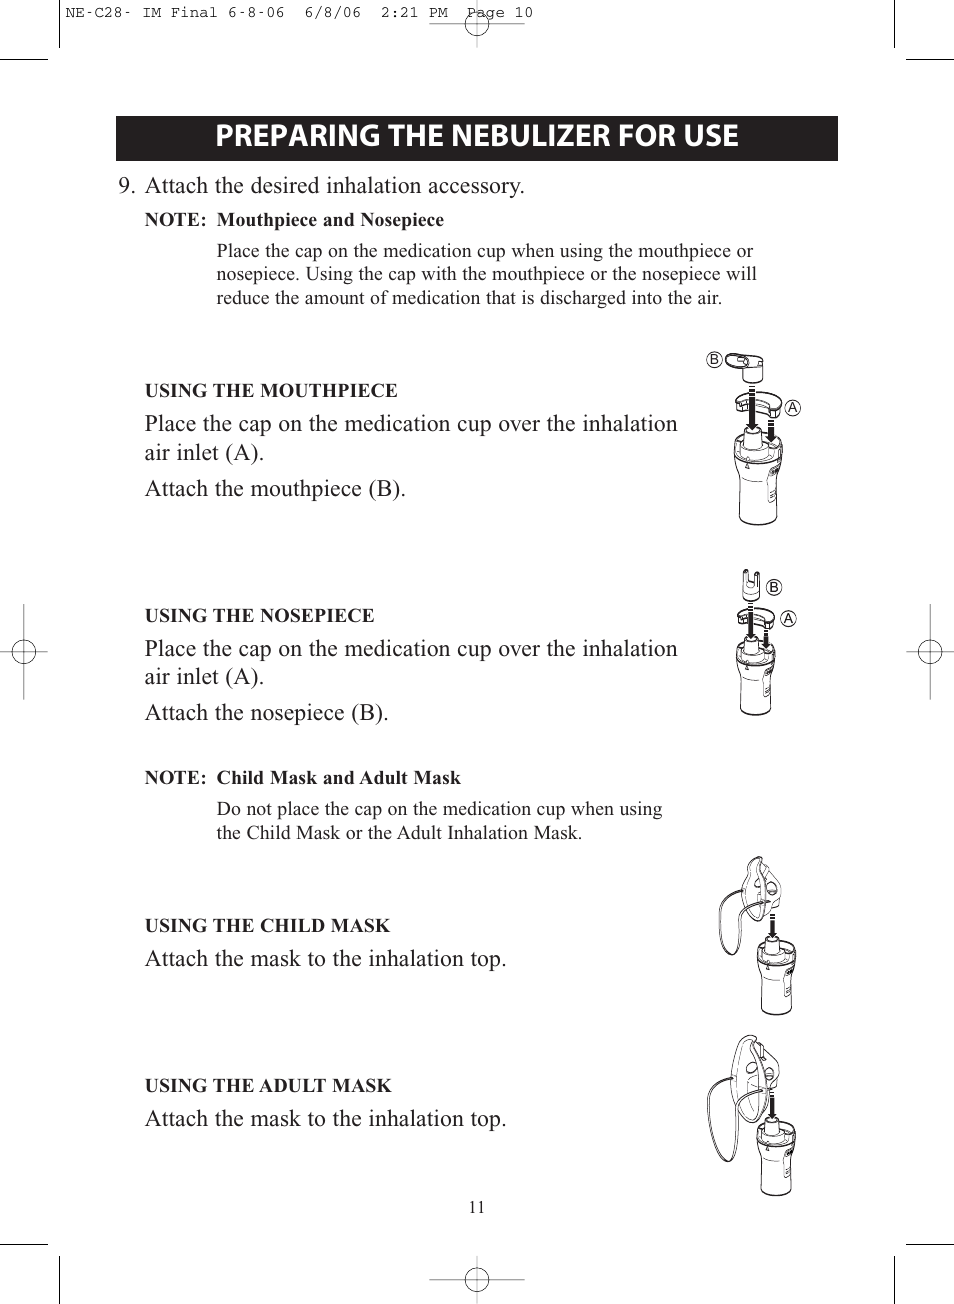 Preparing The Nebulizer For Use Omron Healthcare Compair Ne C28 User Manual Page 11 112